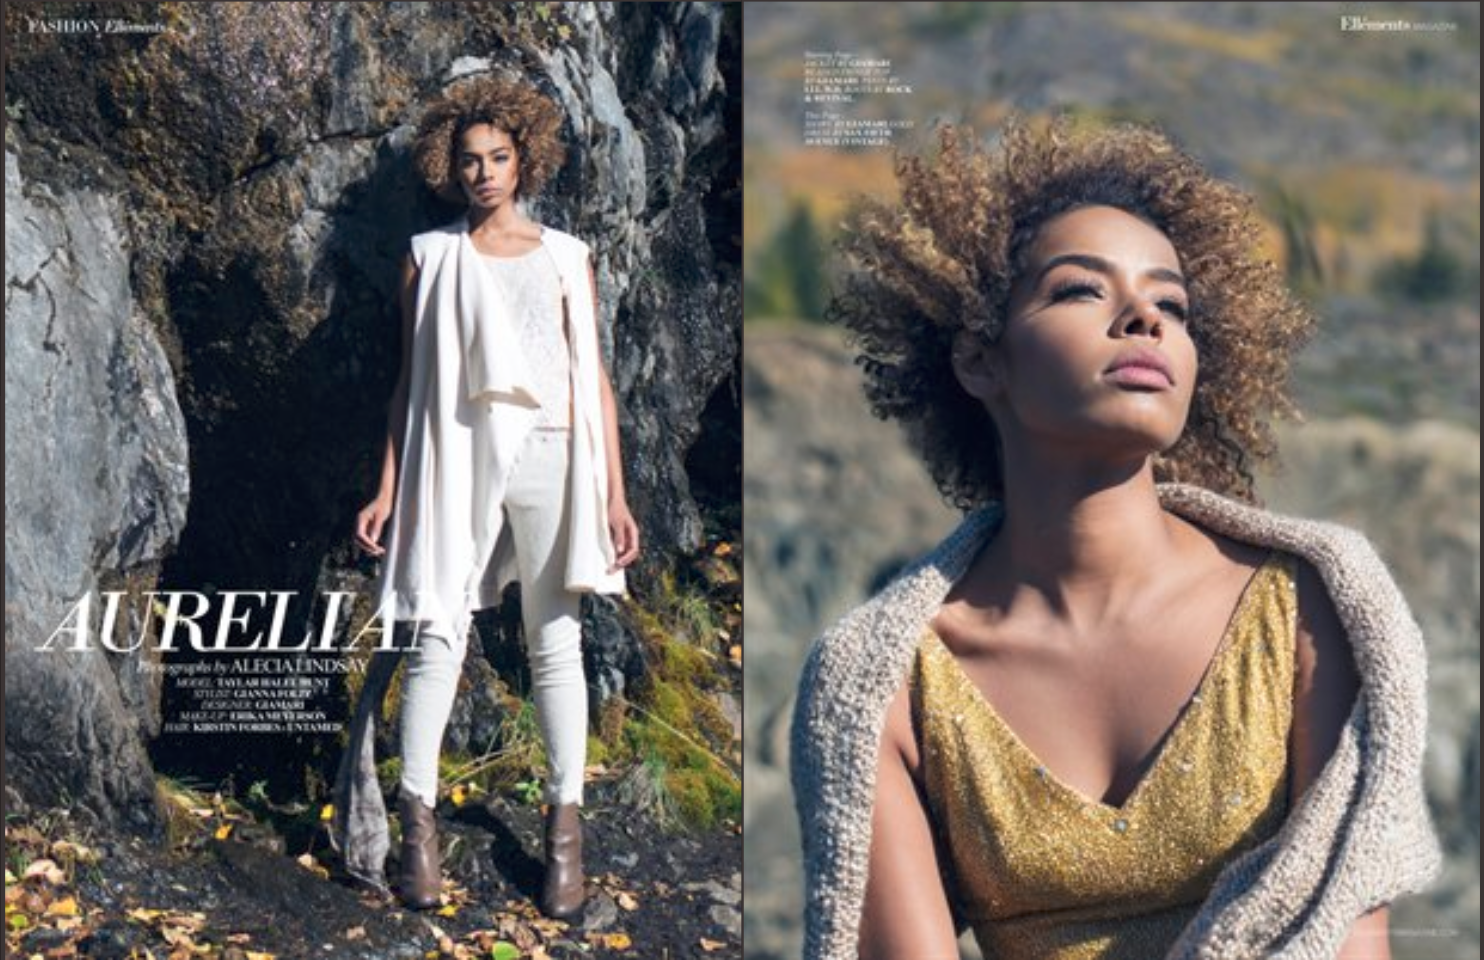 Ellements Magazine, fashion photography by Seattle based Photographer.